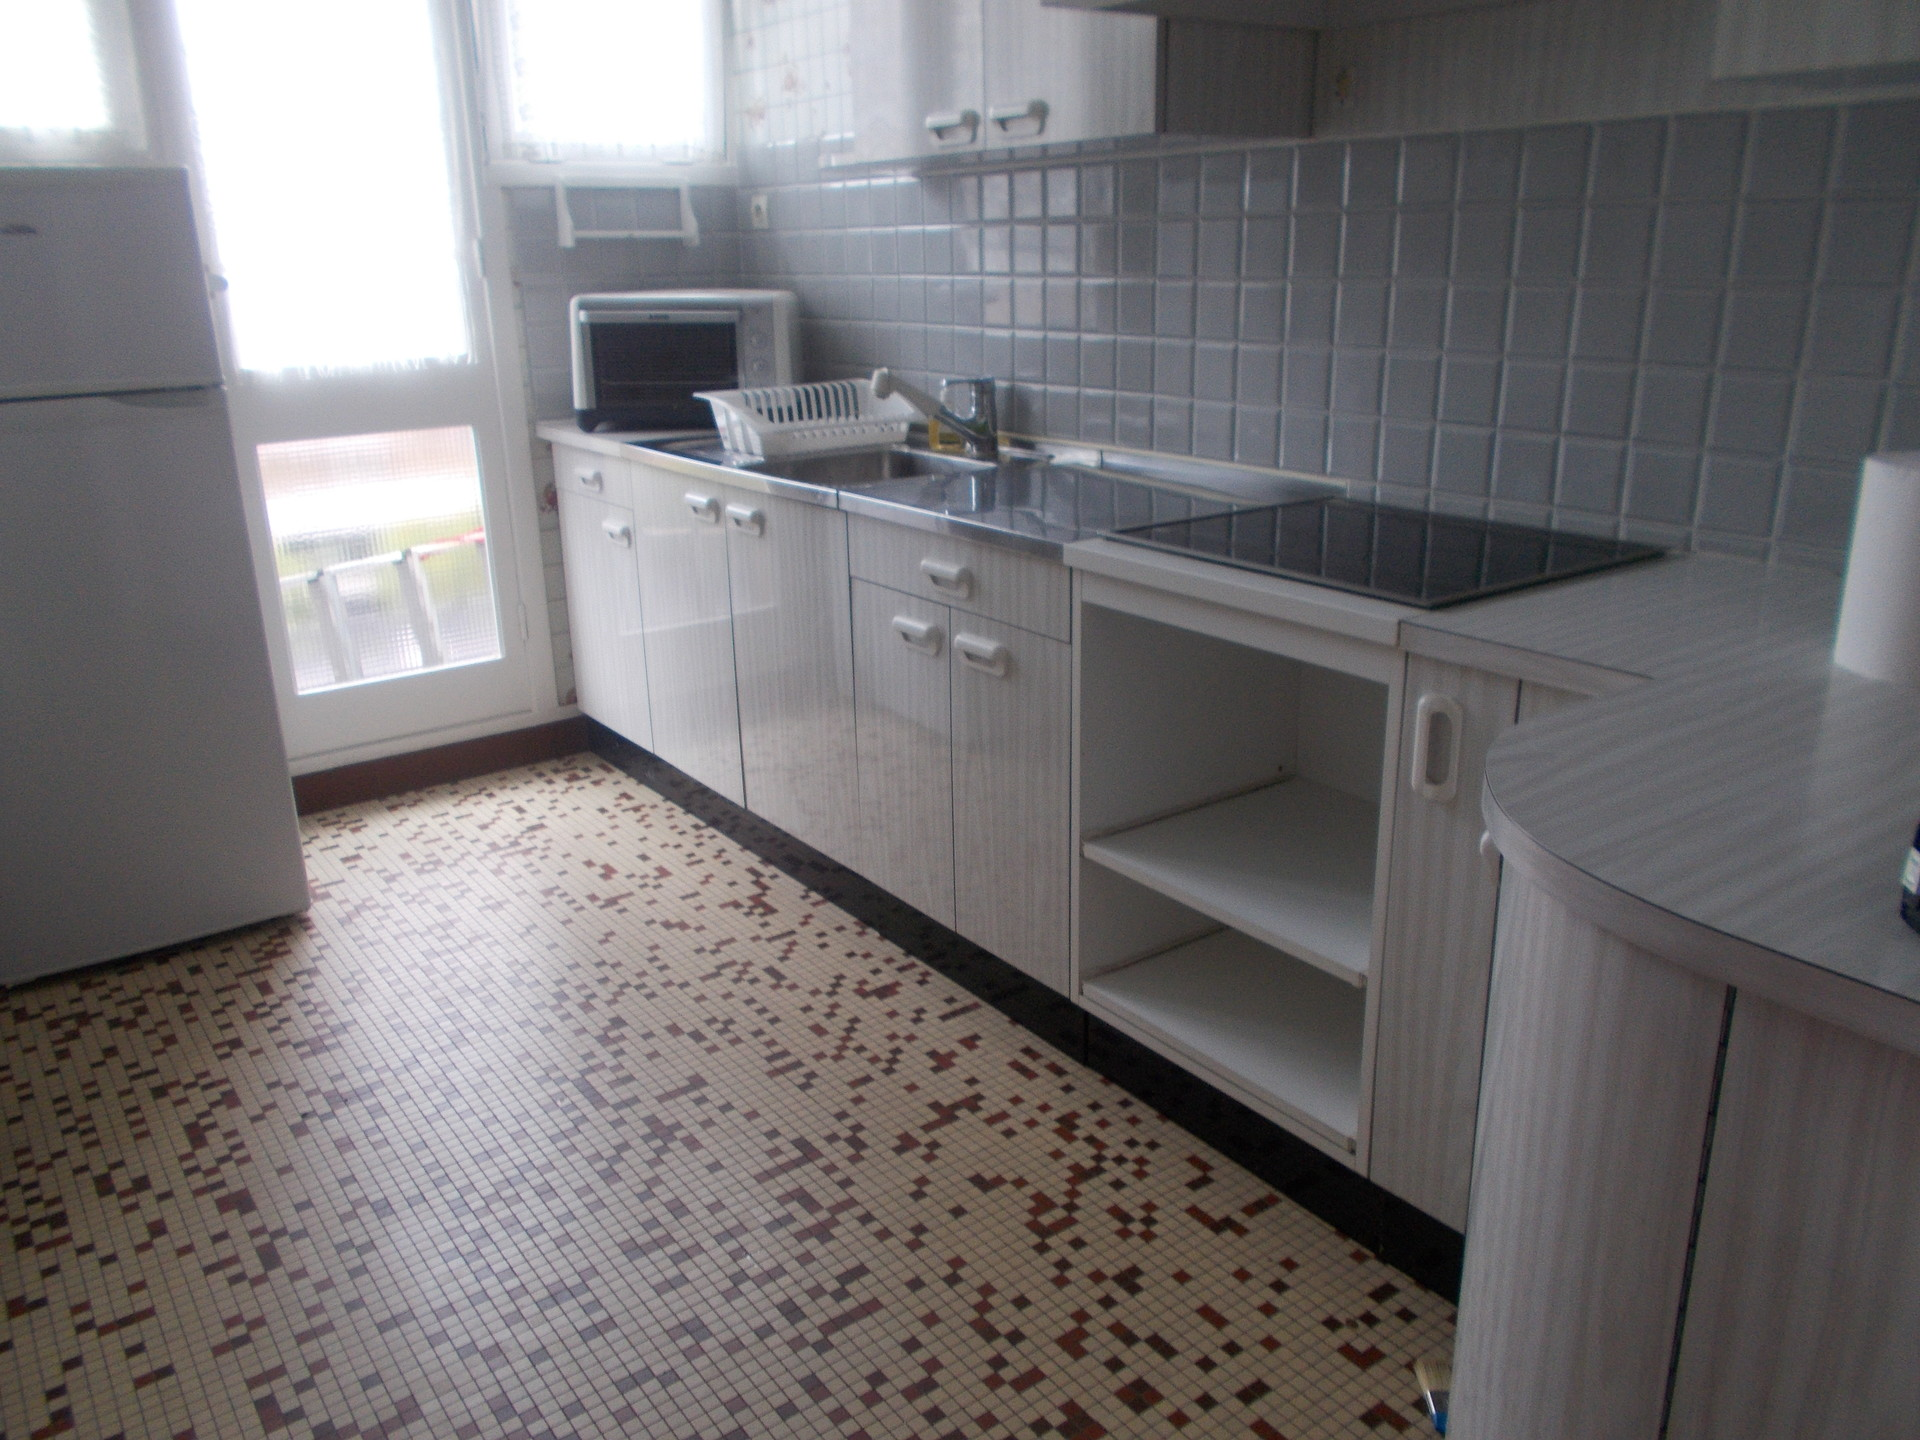 chambre-meublee-rennes-france-6a38f931be